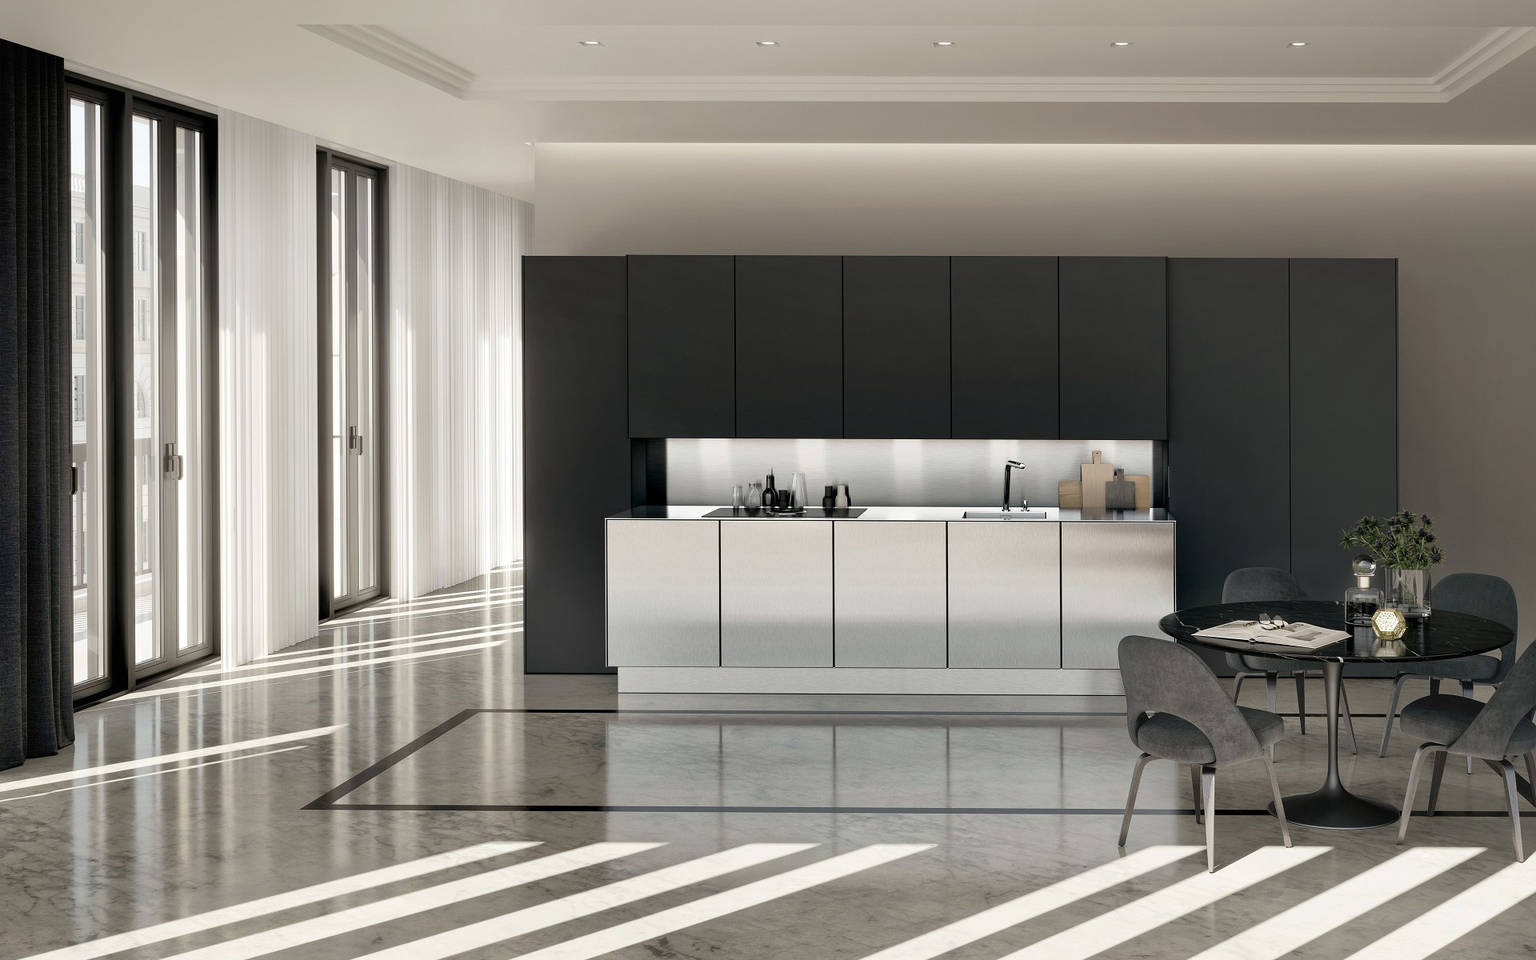 SieMatic Pure SE with cabinets in stainless steel and graphite grey matte lacquer finishes